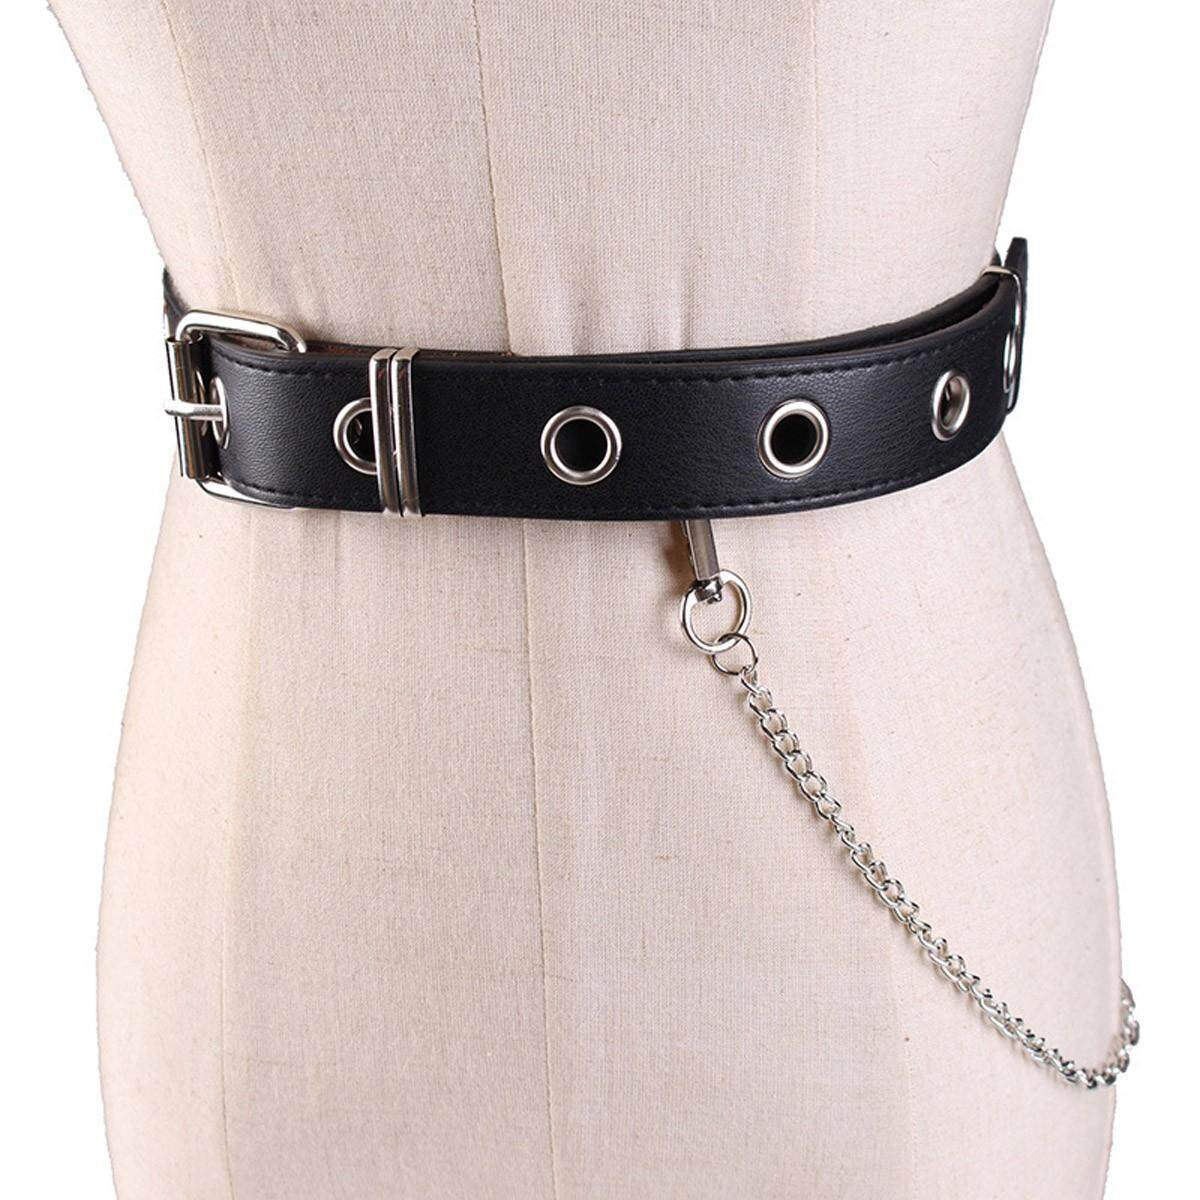 Waist Belt Chain Punk Hip-hop Trendy Women Belts Ladies Fashion Cowboy Steel Pin Buckle